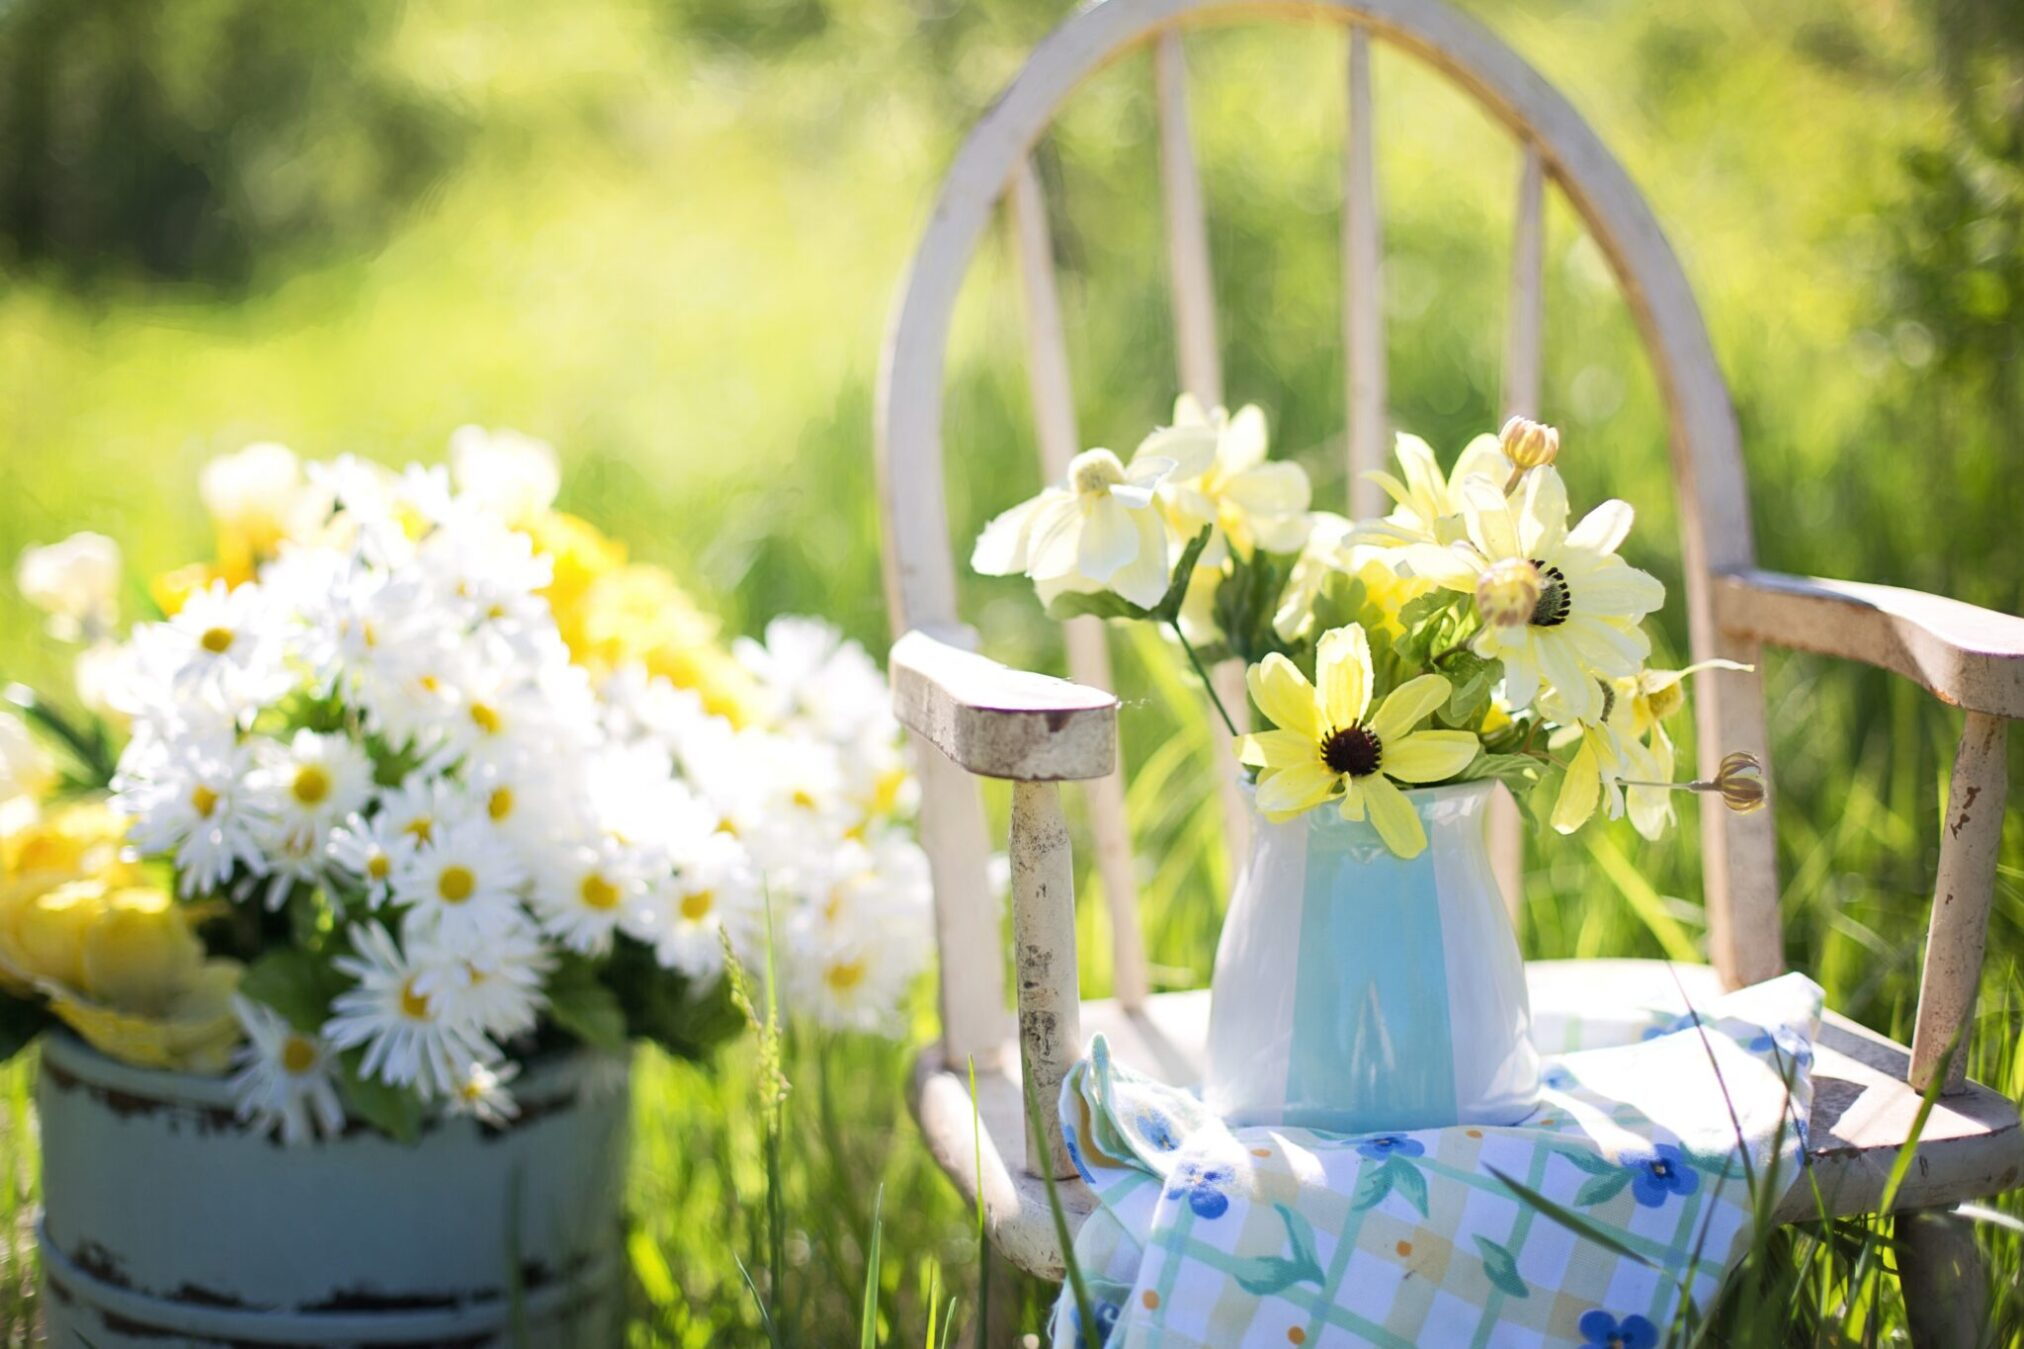 Garden Projects to Create Your Ideal Outdoor Space